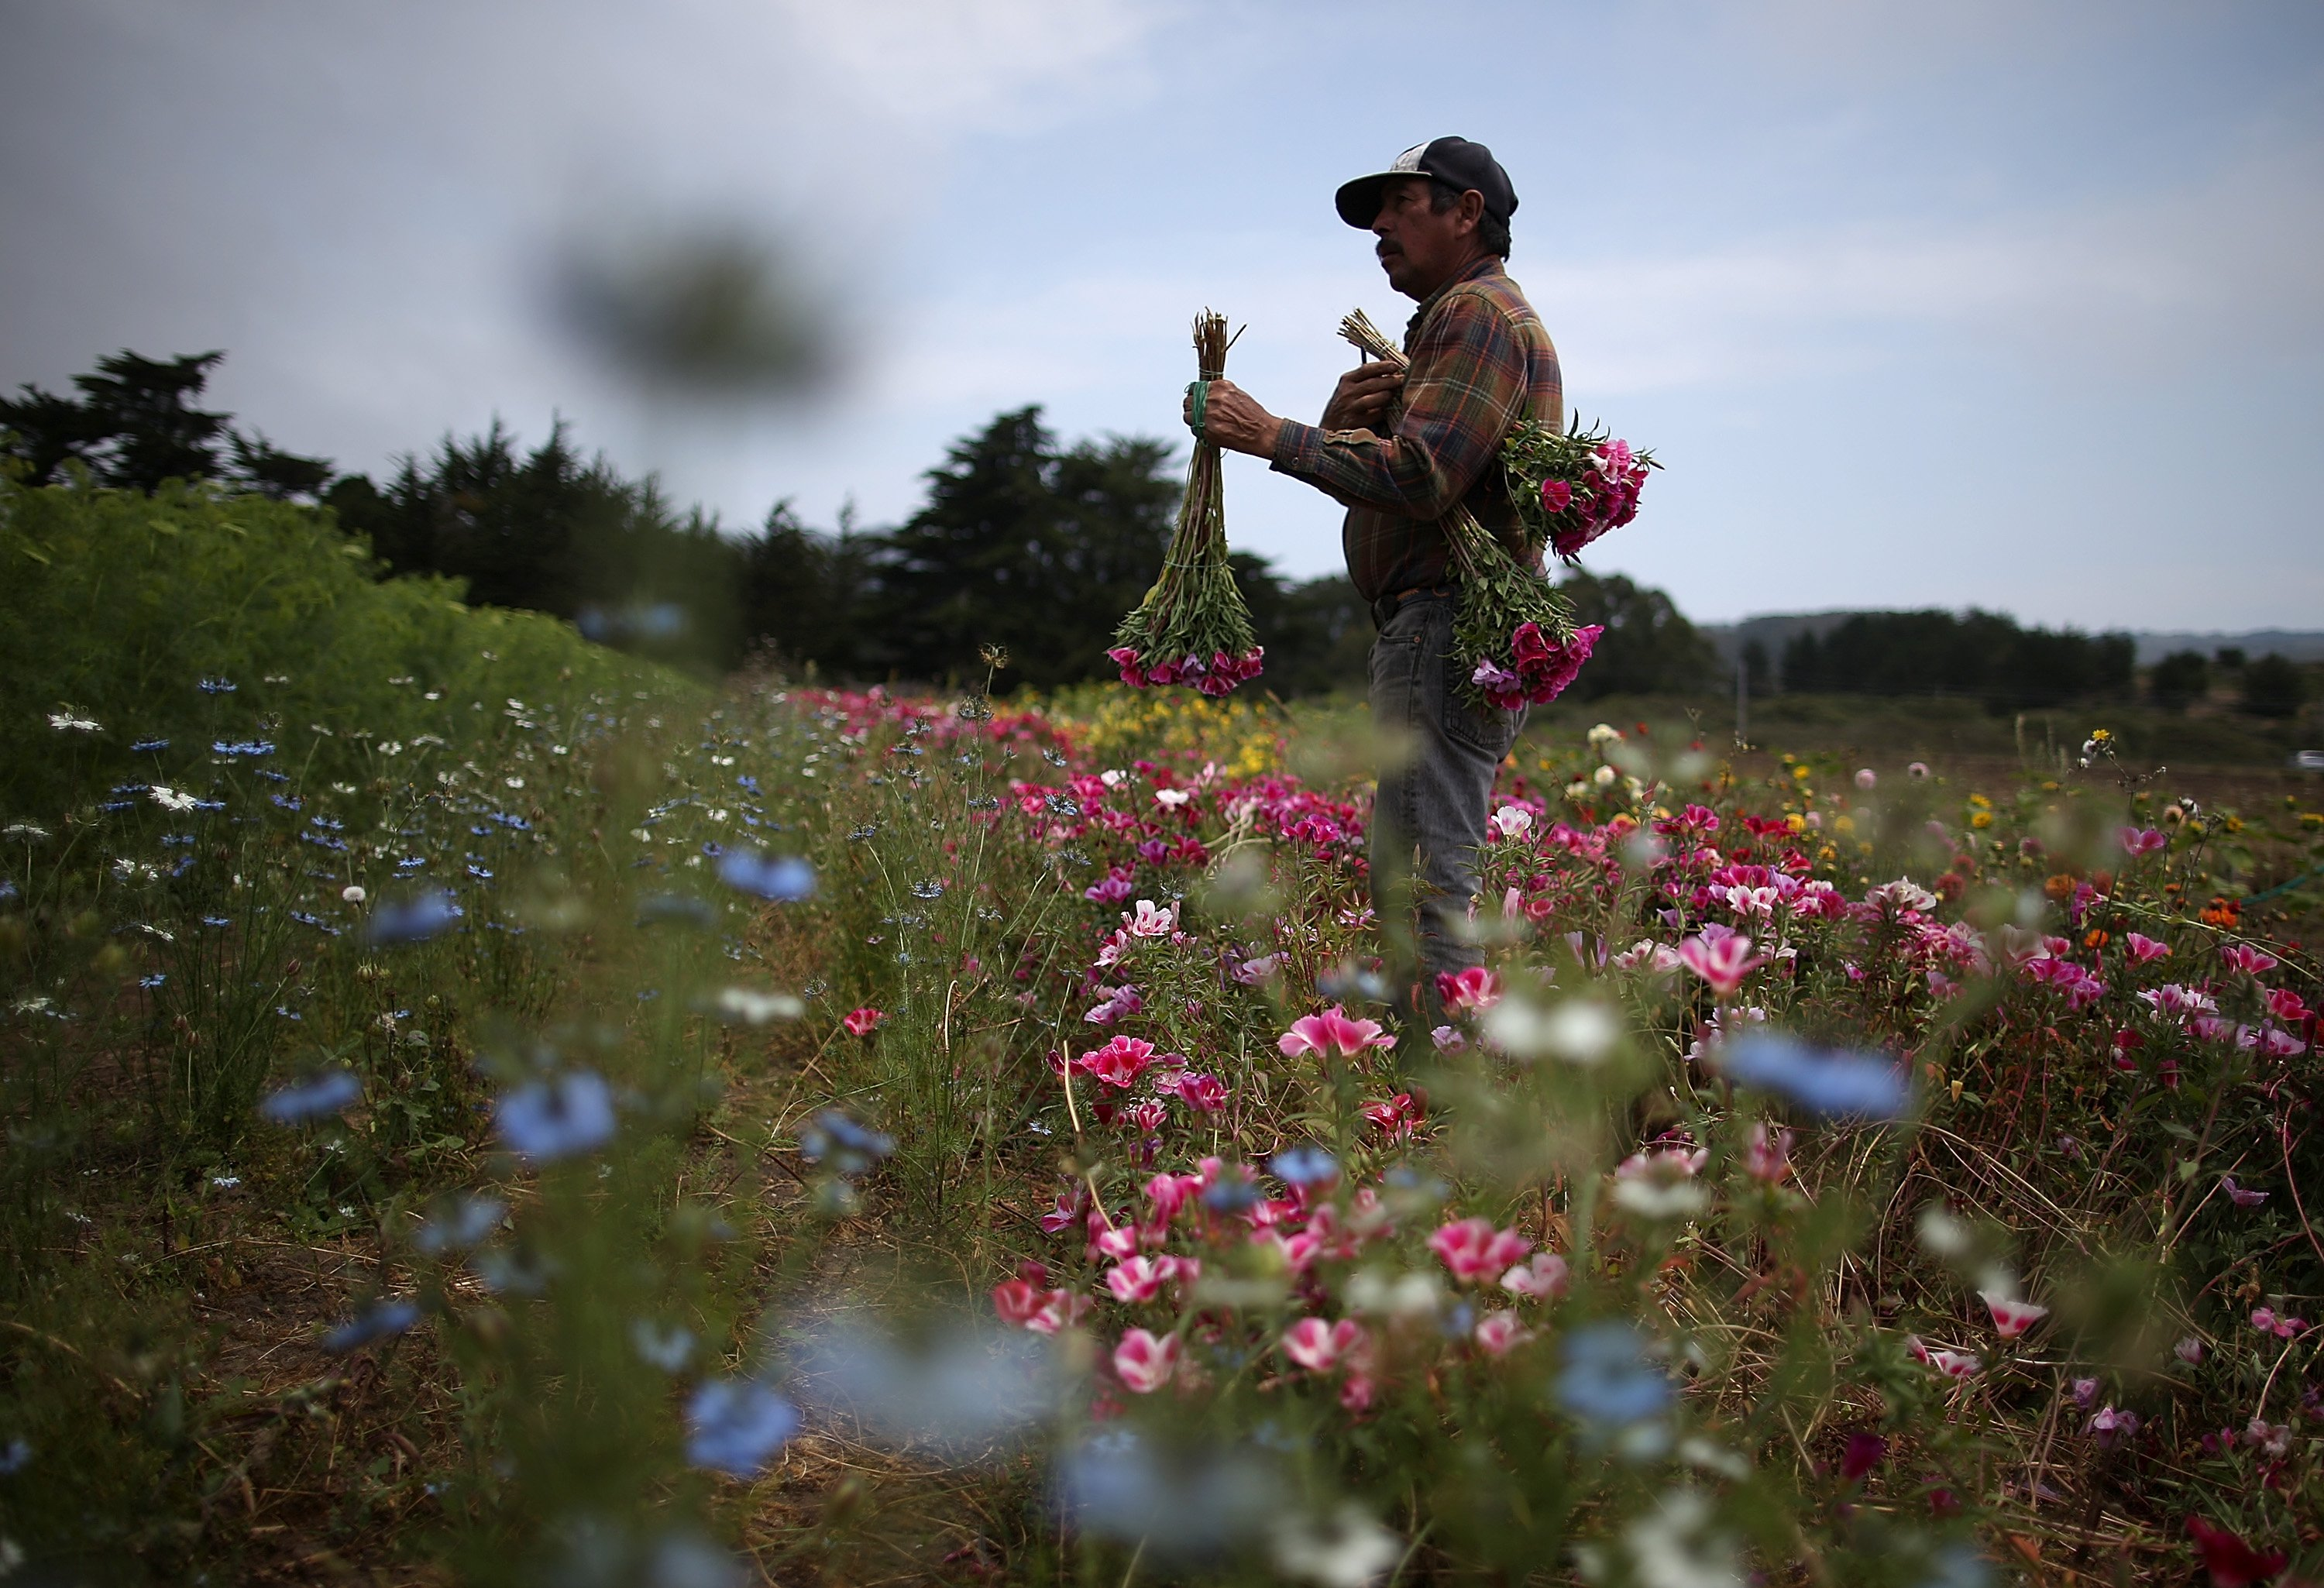 Aug. 6, 2014. Field worker Reuben Haro harvests fresh flowers at Cypress Flower Farm in Moss Beach, California.  As the severe drought in California continues to worsen, flower farmers are facing hardships and are reducing the size of their crops as water prices reach record highs and natural water resources are drying up.